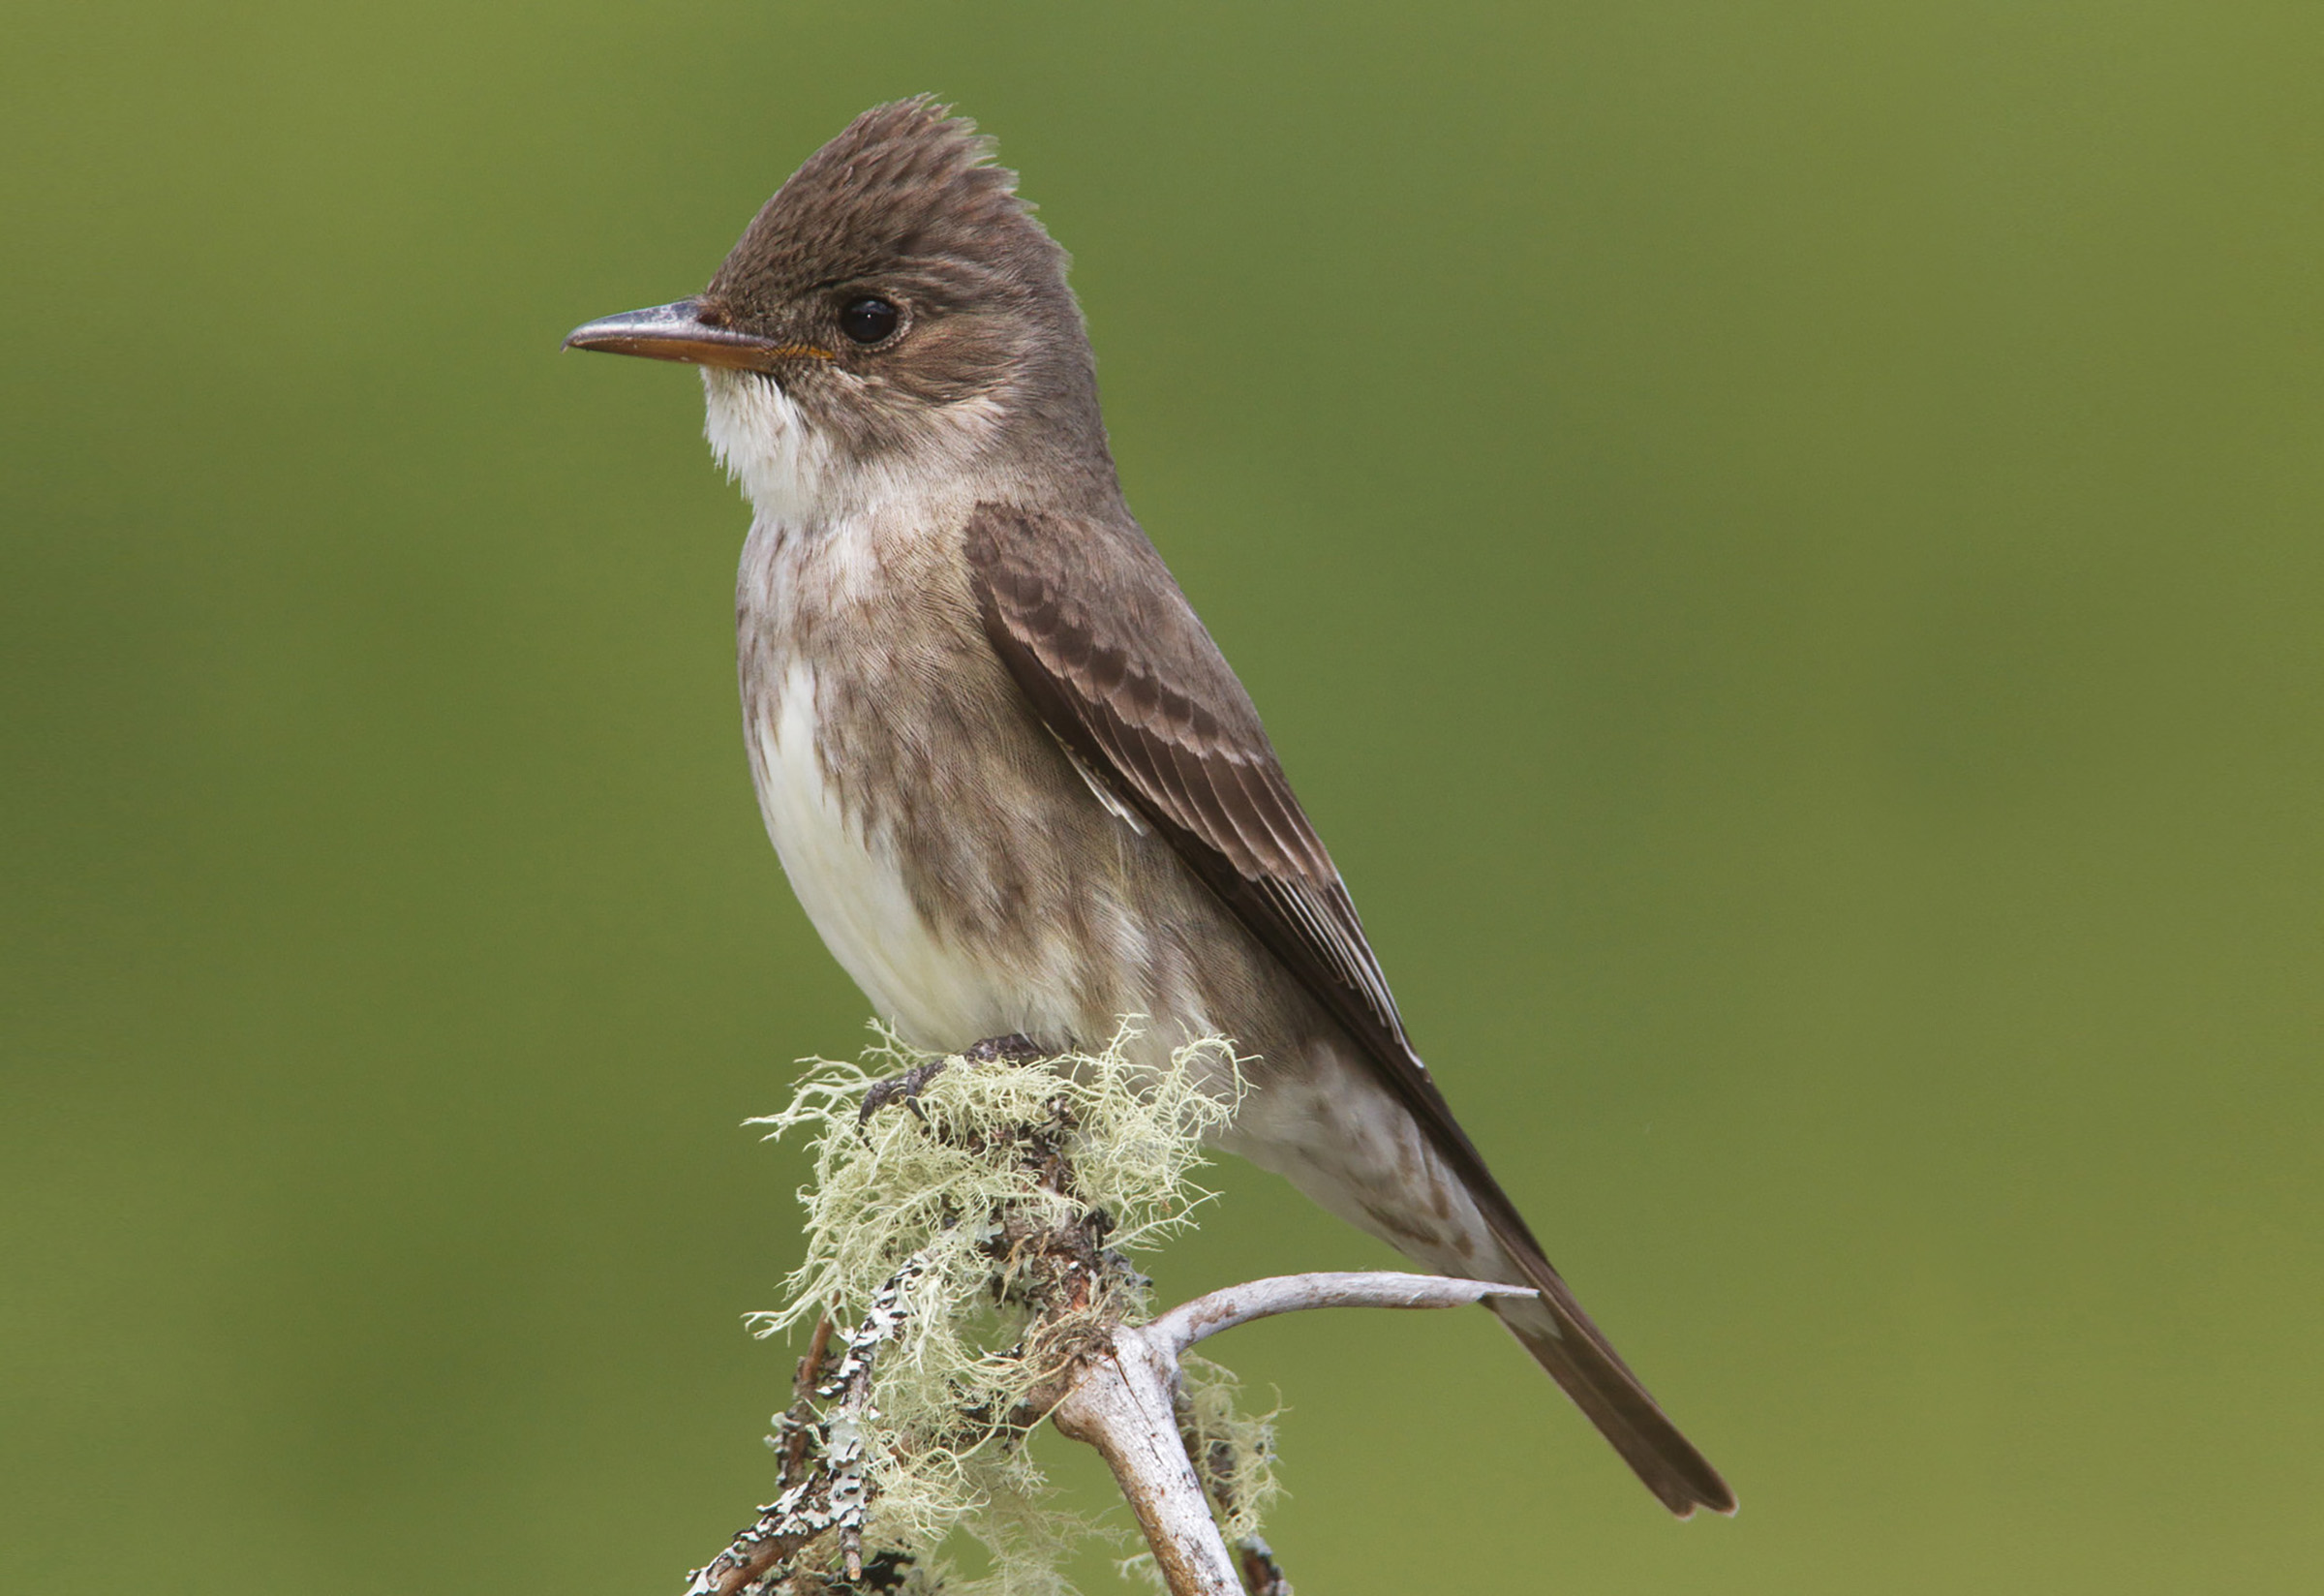 The Olive-sided Flycatcher is a threatened aerial insectivore that is known to nest in the MCFC license area.